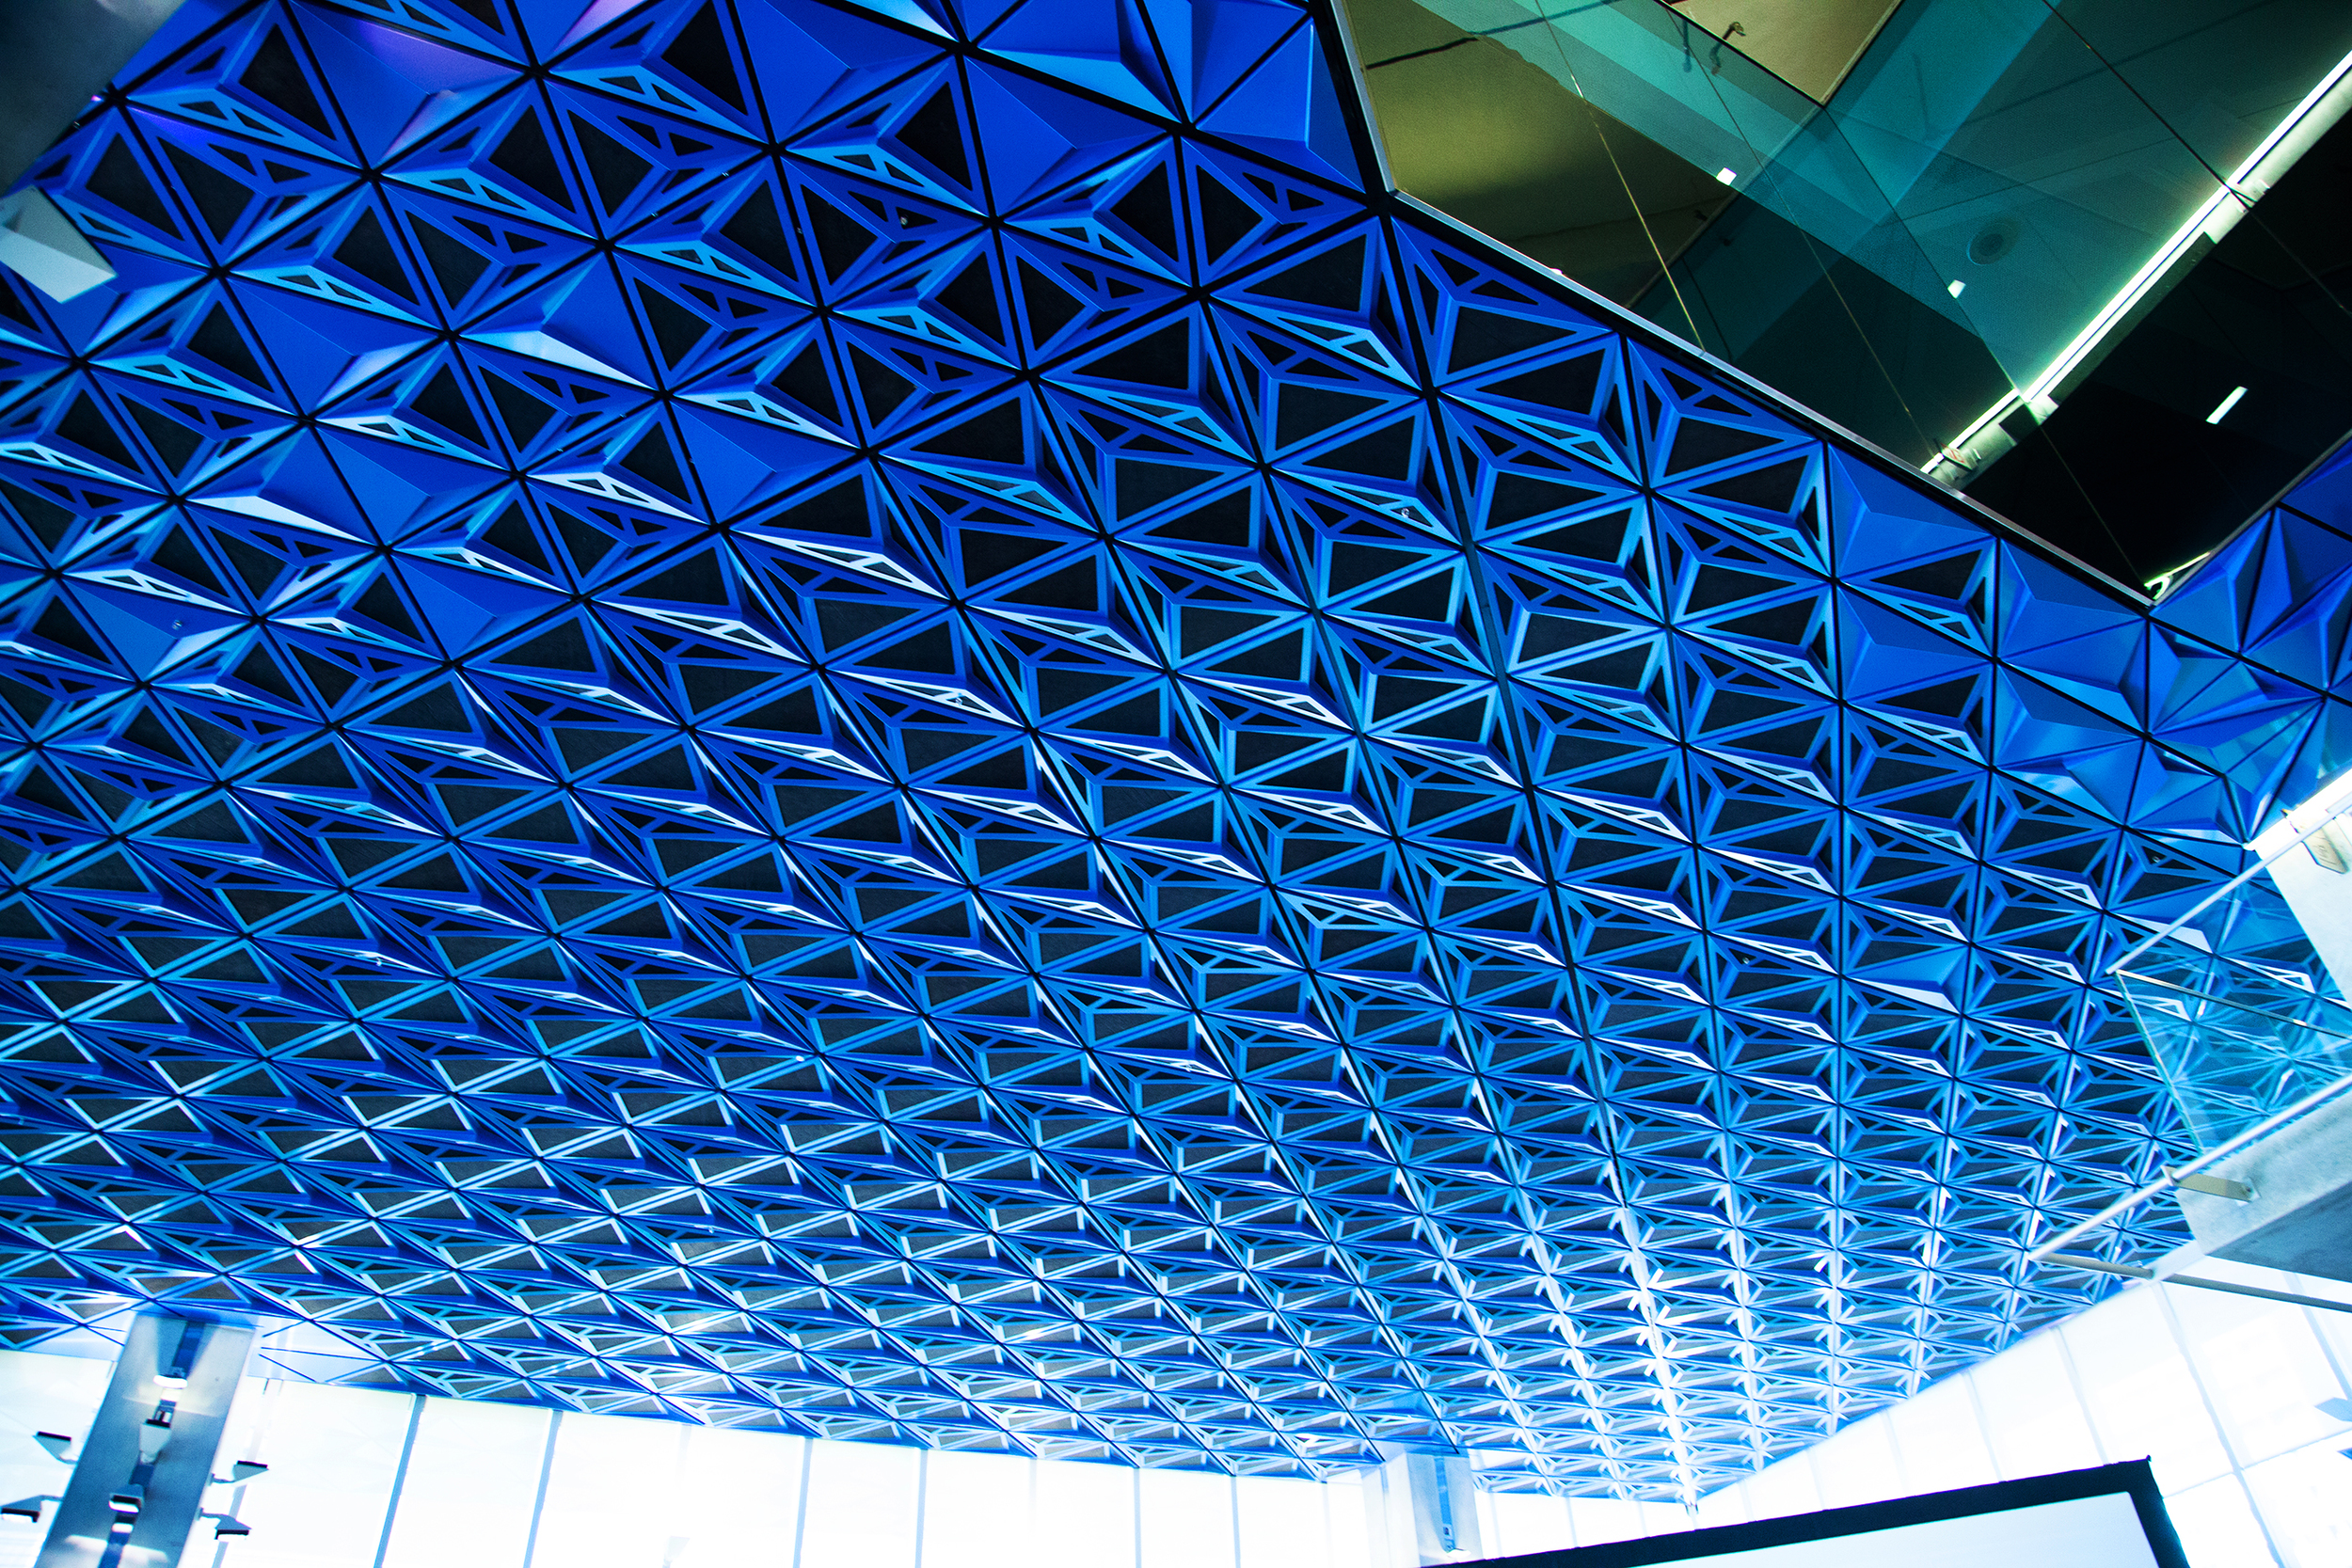 Hand Folded Metal Panels provide a beautiful futuristic looking ceiling to look at